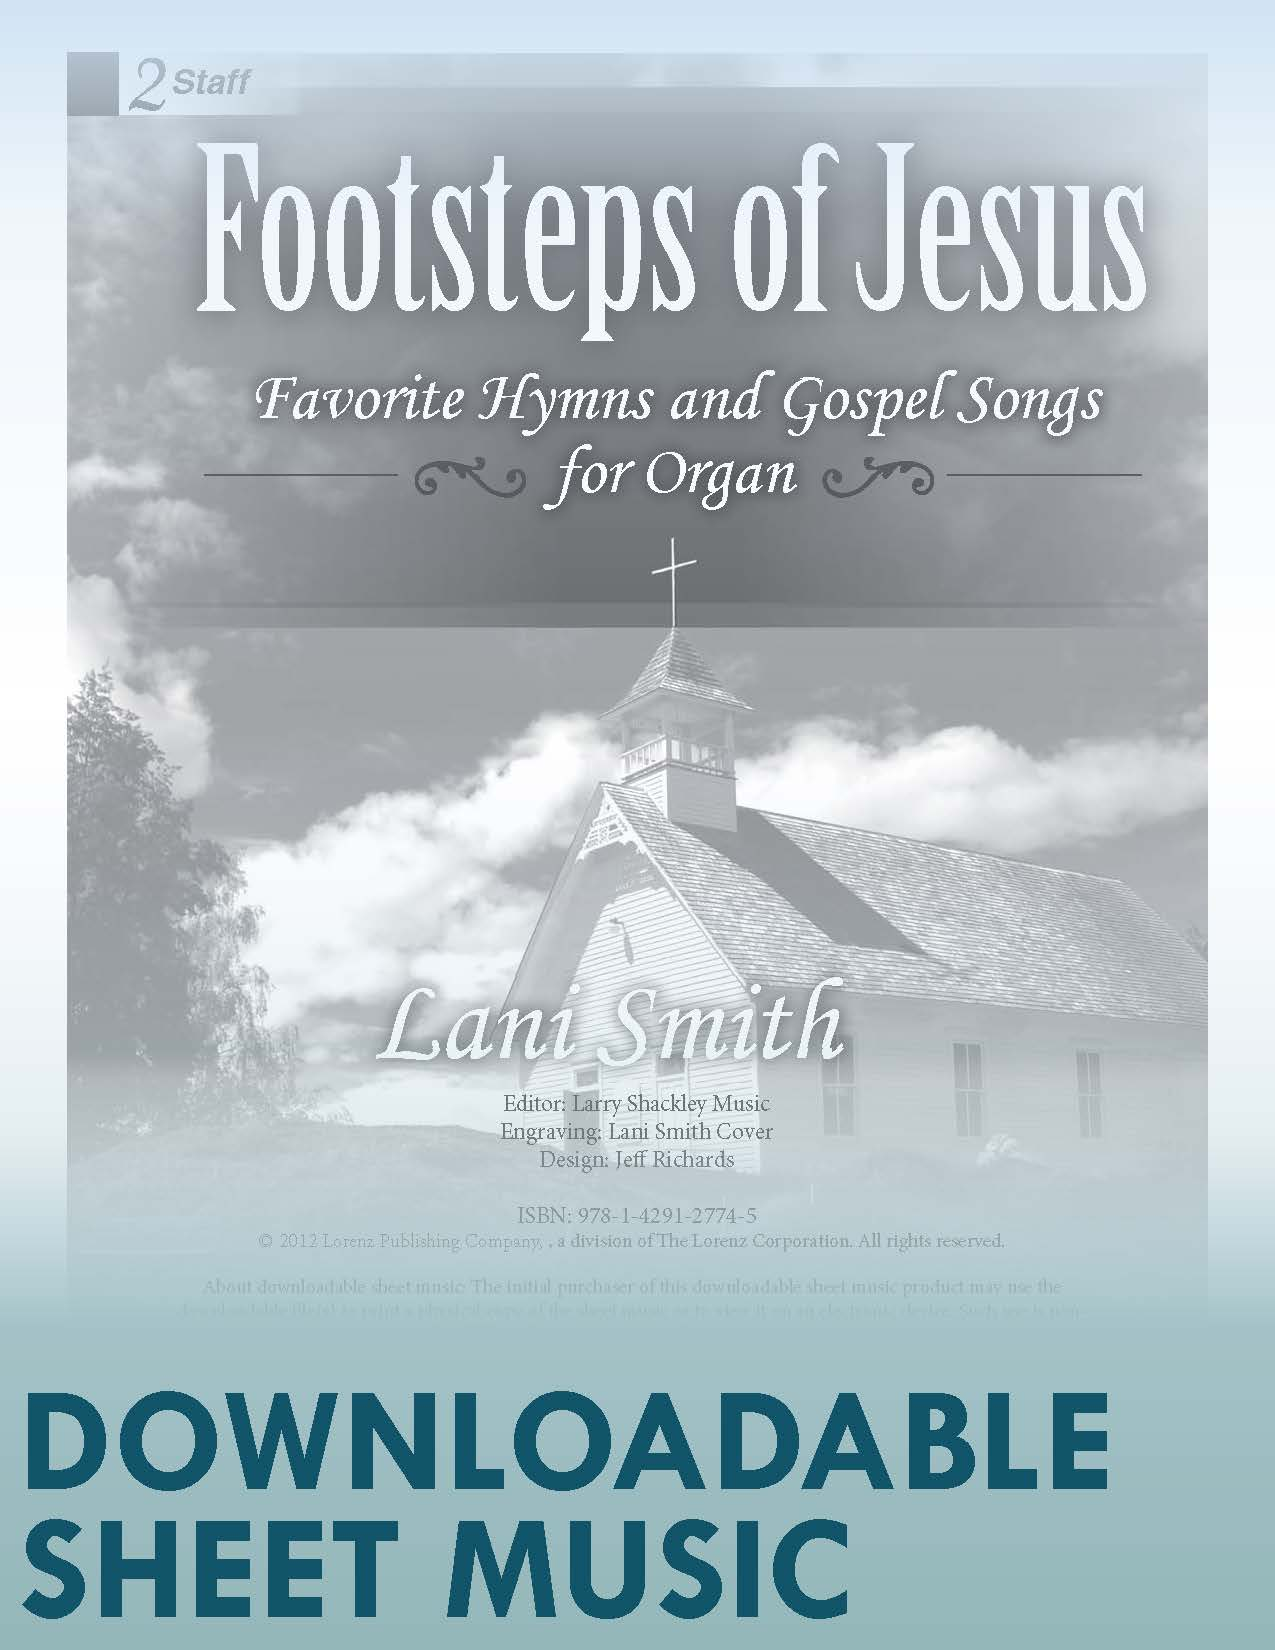 Footsteps of Jesus - Digital Download